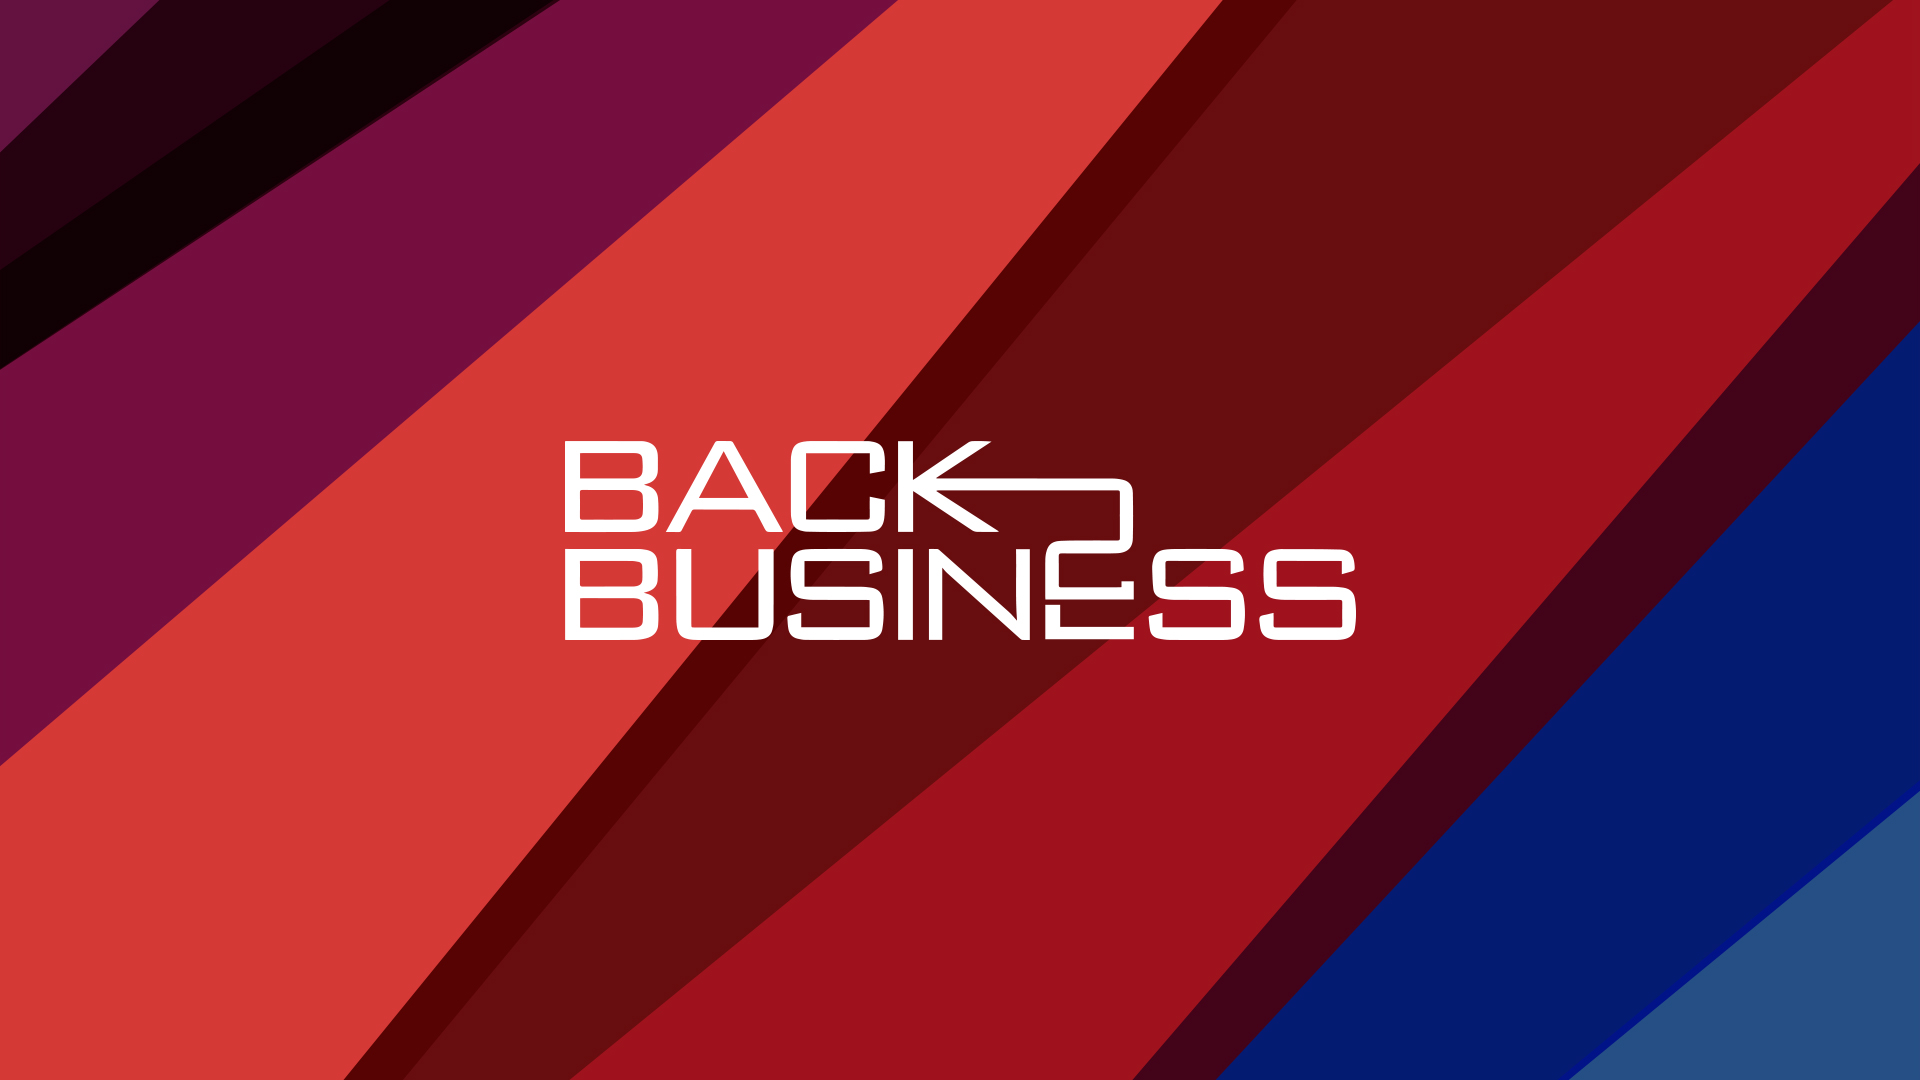 Back 2 Business Oman Branding